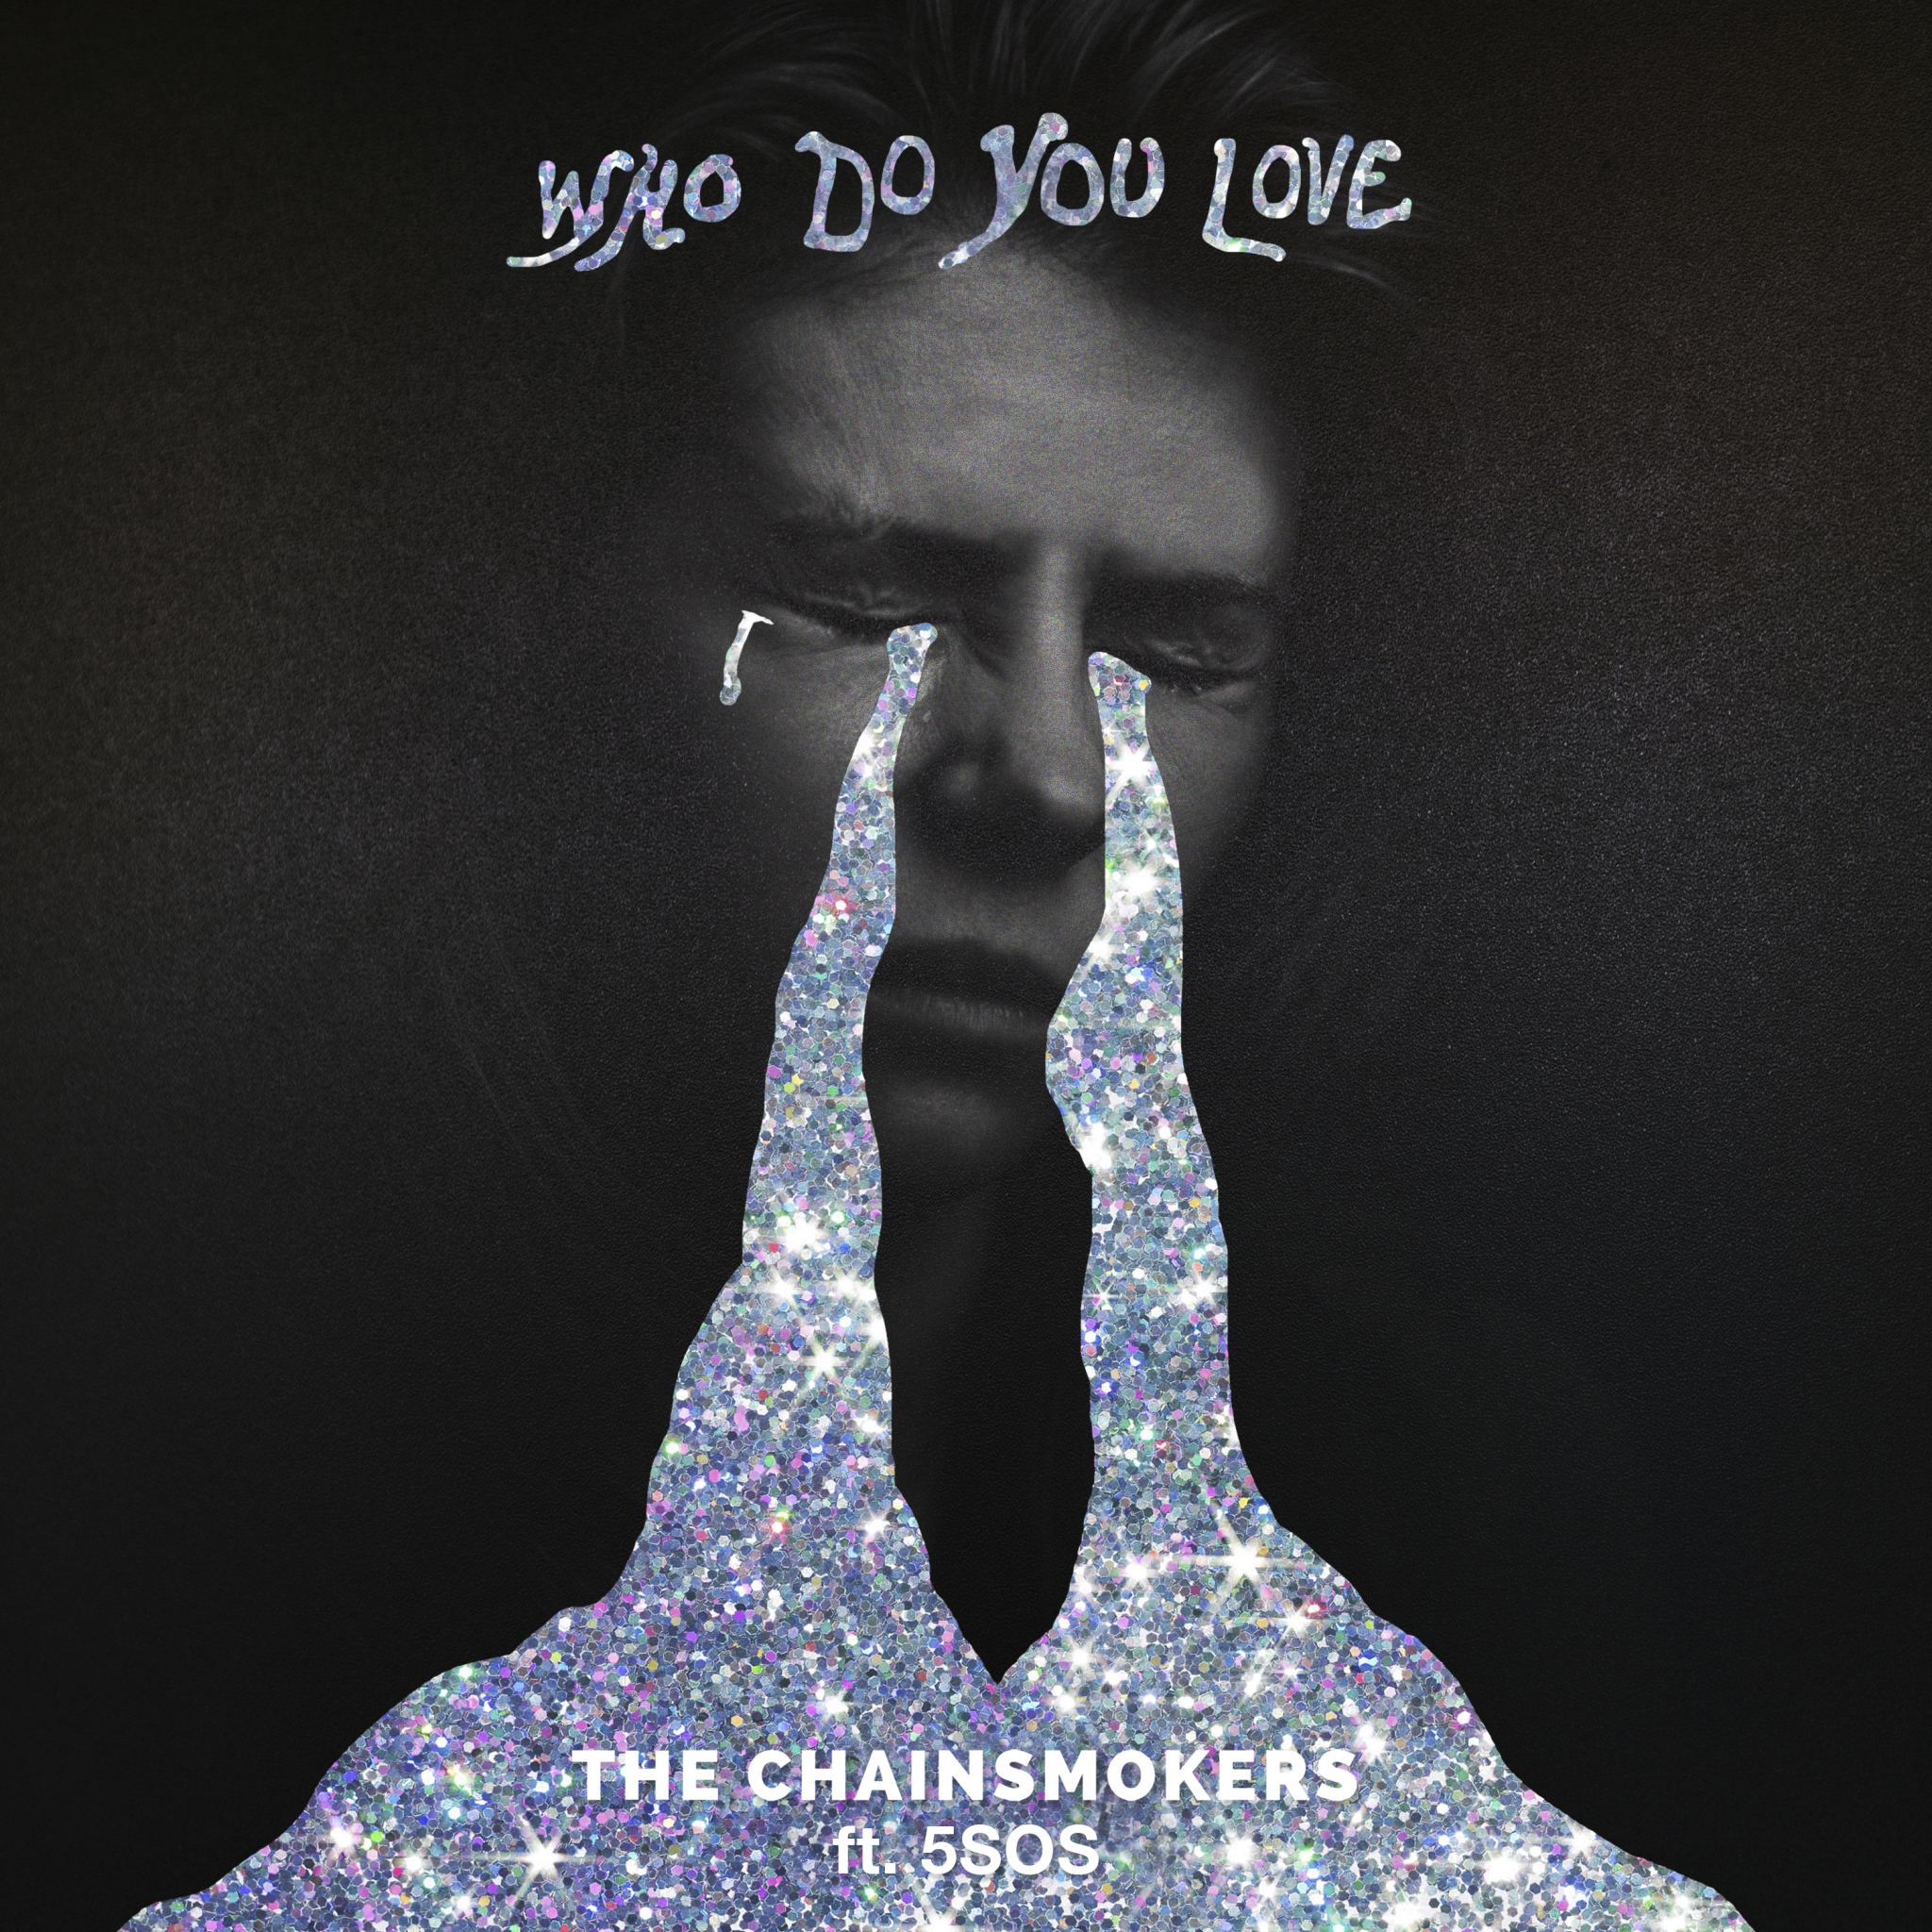 The Chainsmokers 2019